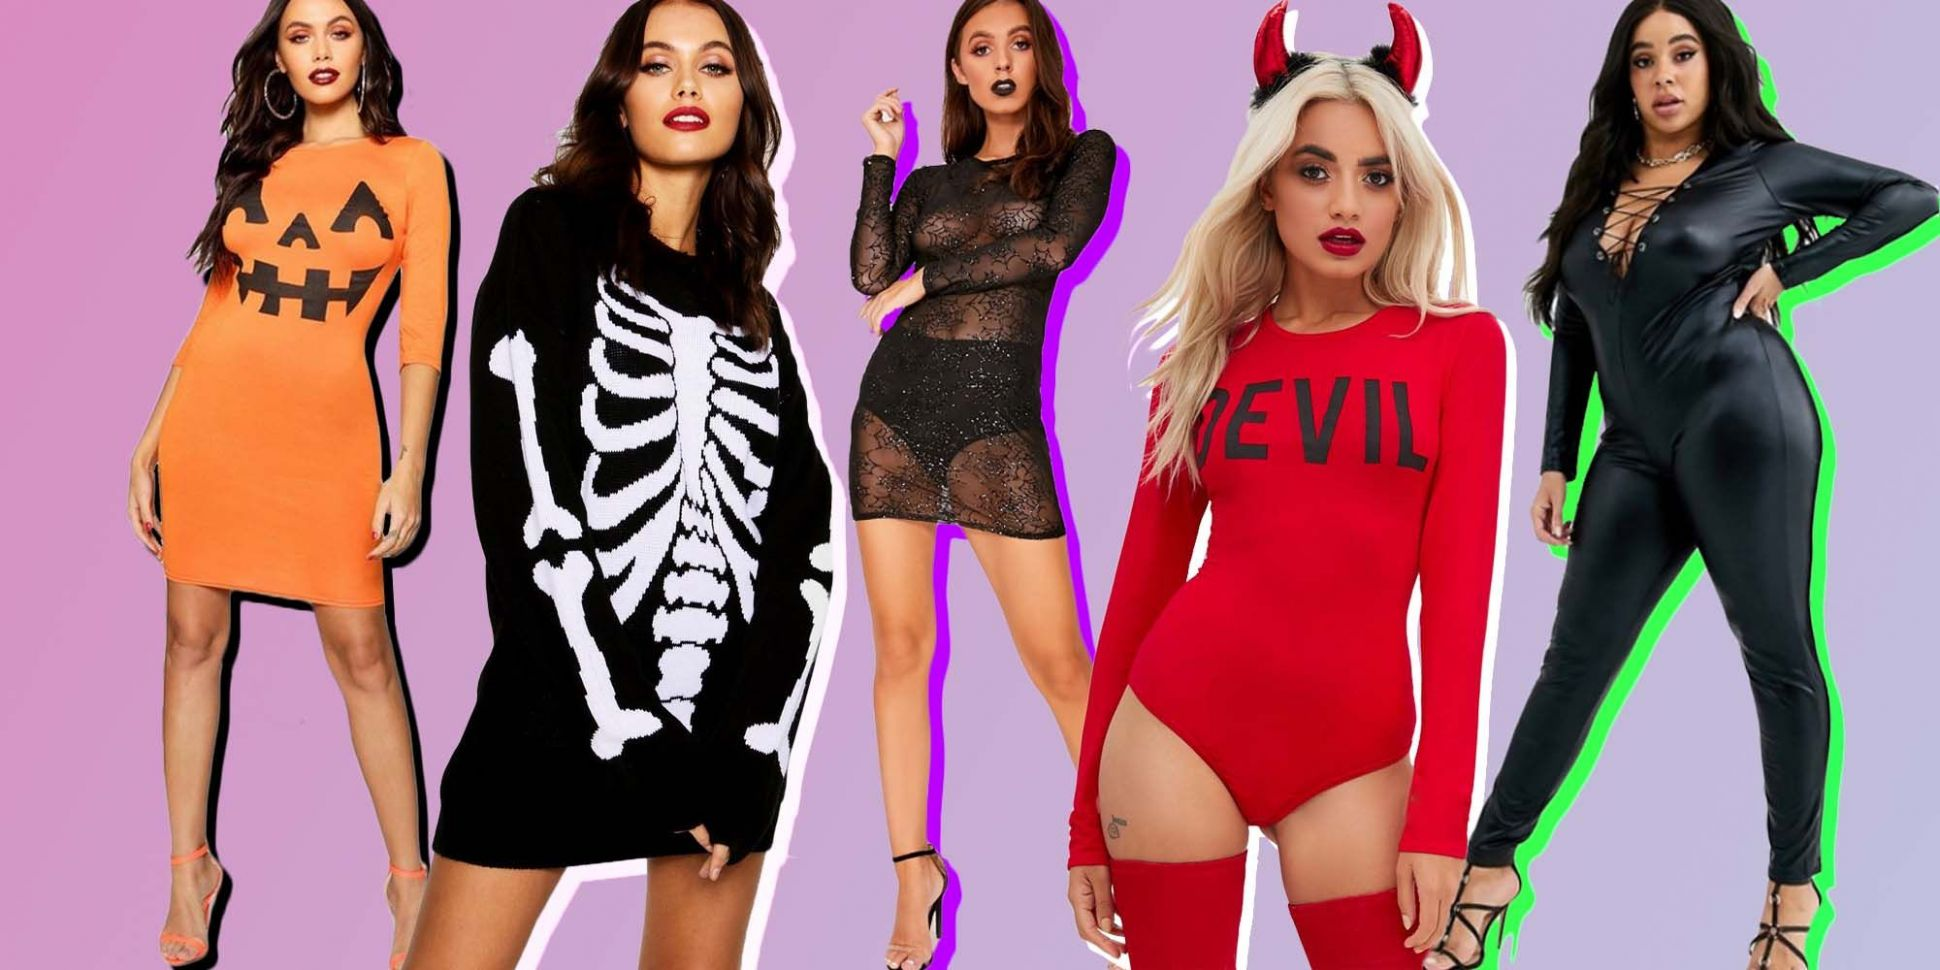 9 sexy Halloween costumes: best costume ideas for women - halloween ideas ladies